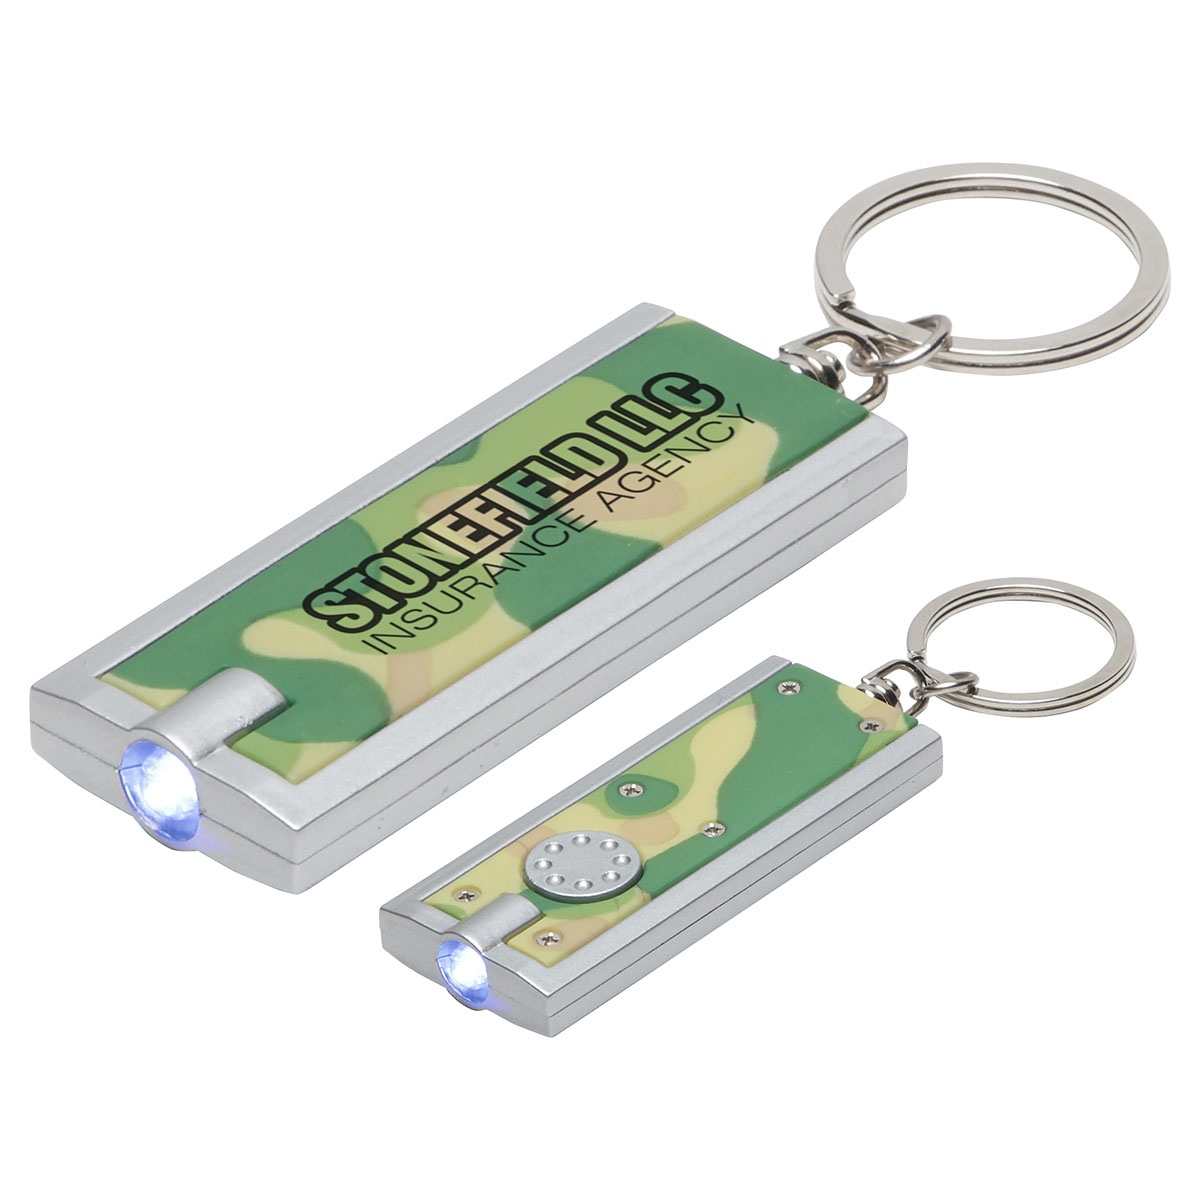 Simple Touch Camouflage LED Keychain, WLT-SC11 - 1 Colour Imprint